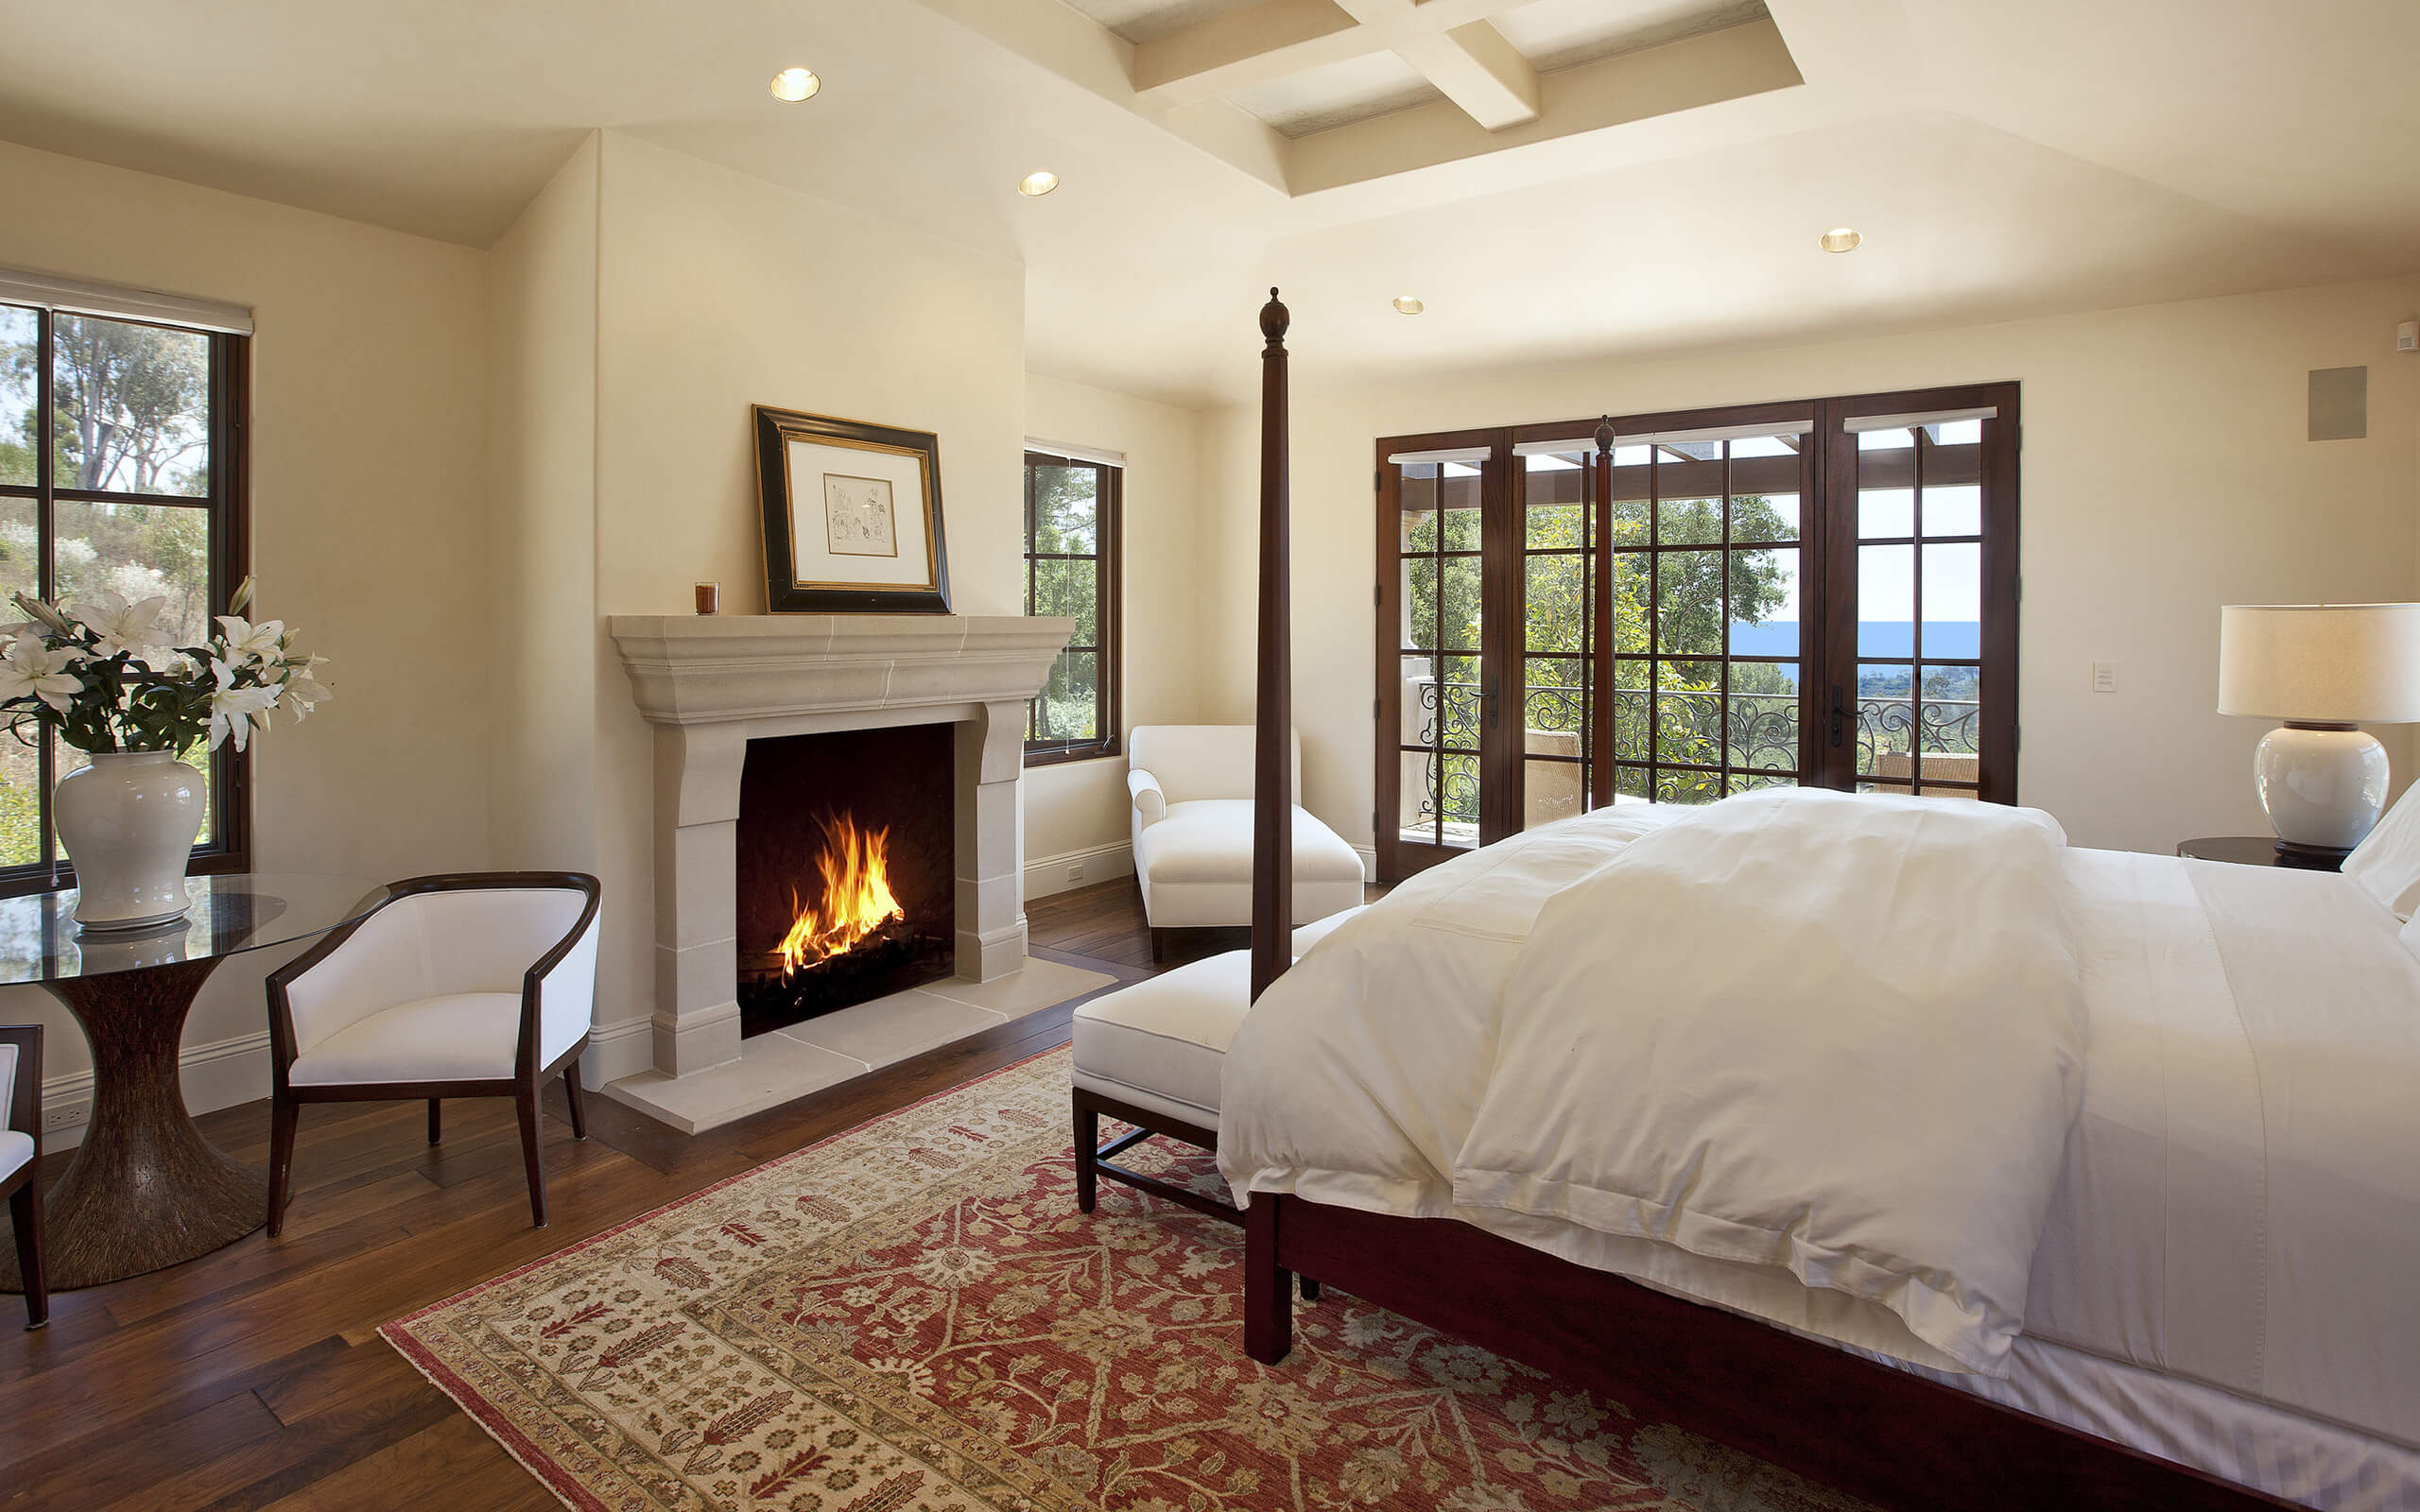 132+ Bedroom Ideas and Designs Photo Gallery - Stylish and ...